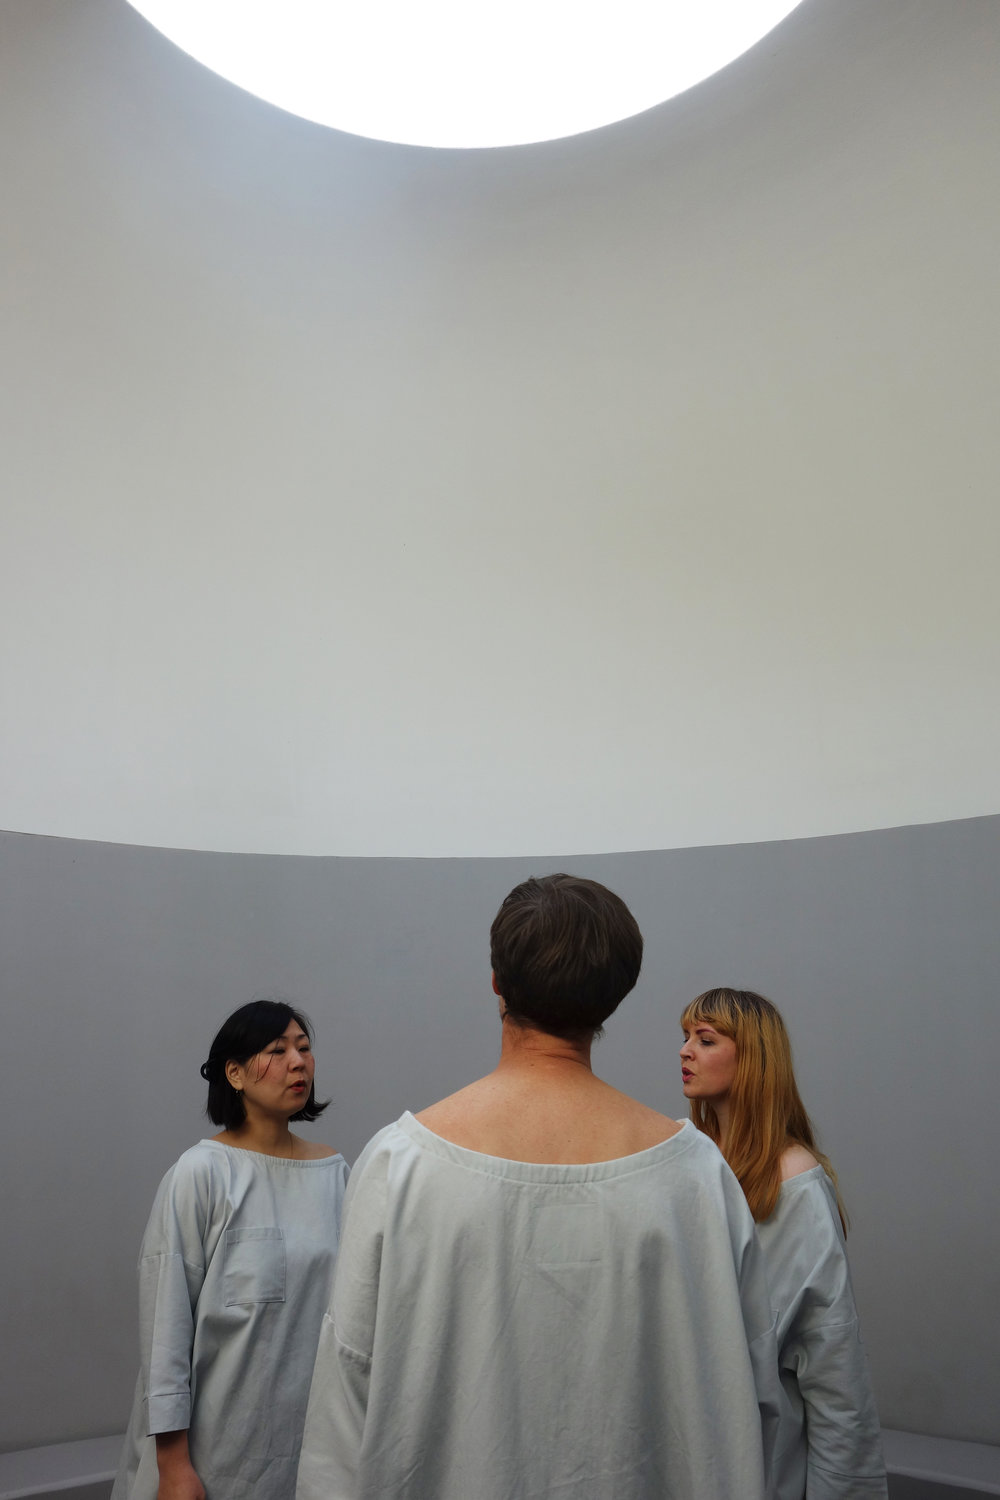 My Mouth at de Young Museum - James Turrell's Three Gems - w/ Rumi Koshino, Colter Jacobsen. Photo: Ry Rocklen. Costume 323